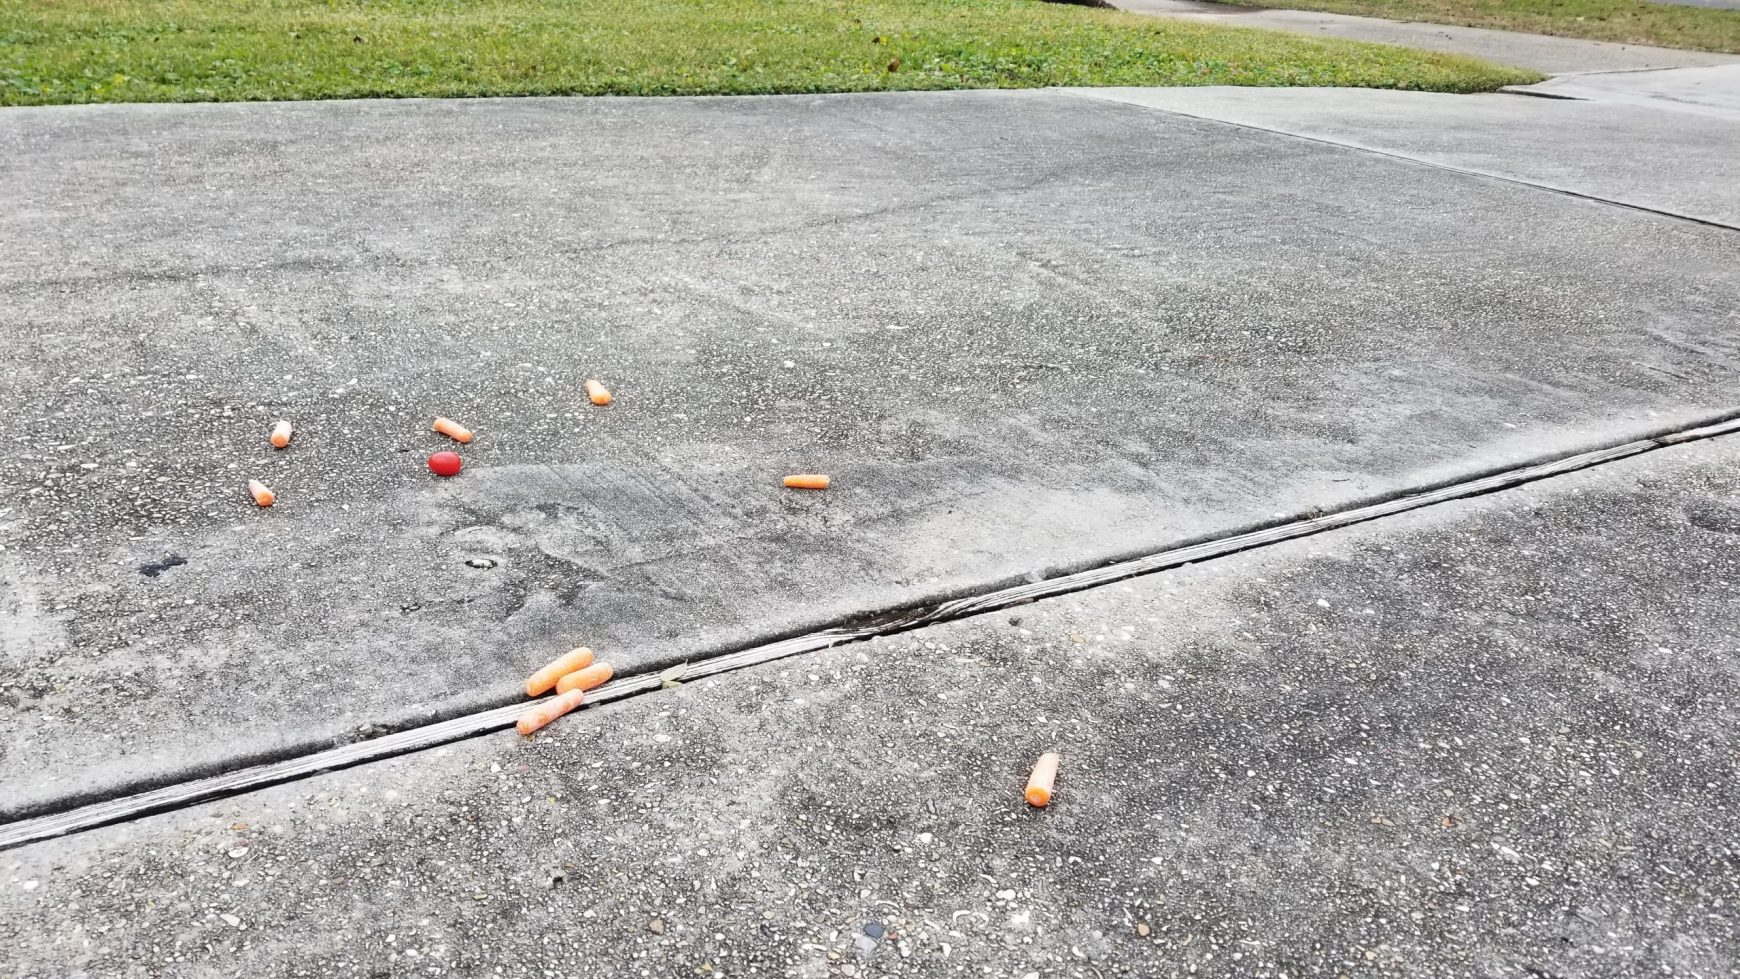 After the Show PODCAST:  Carrots in the Driveway